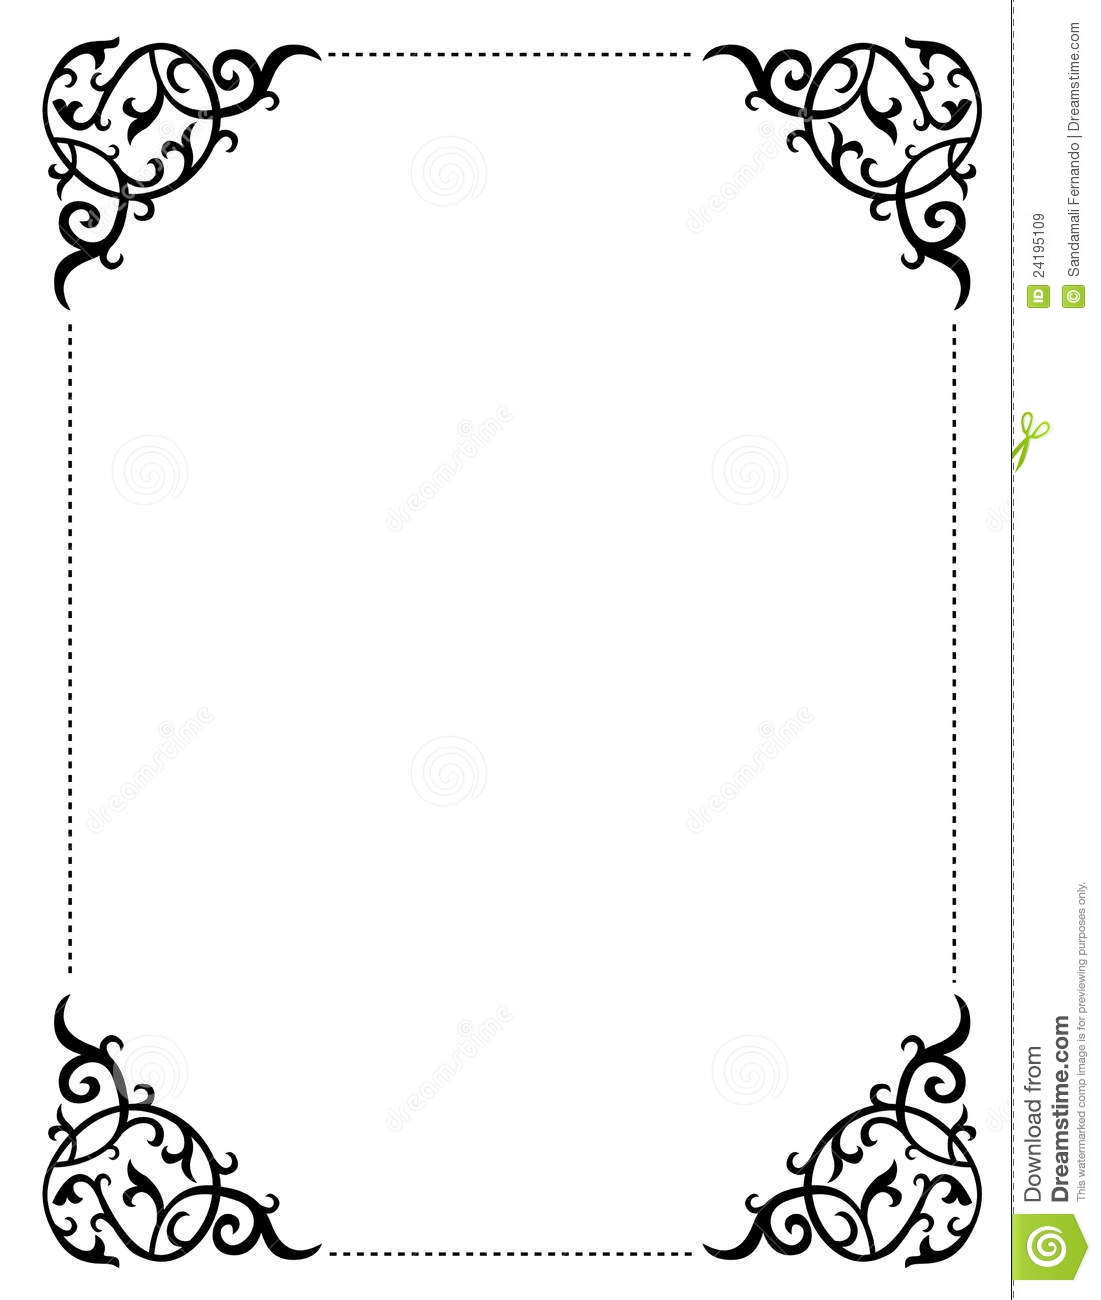 image regarding Printable Border called Printable Clipart Borders Totally free obtain most straightforward Printable